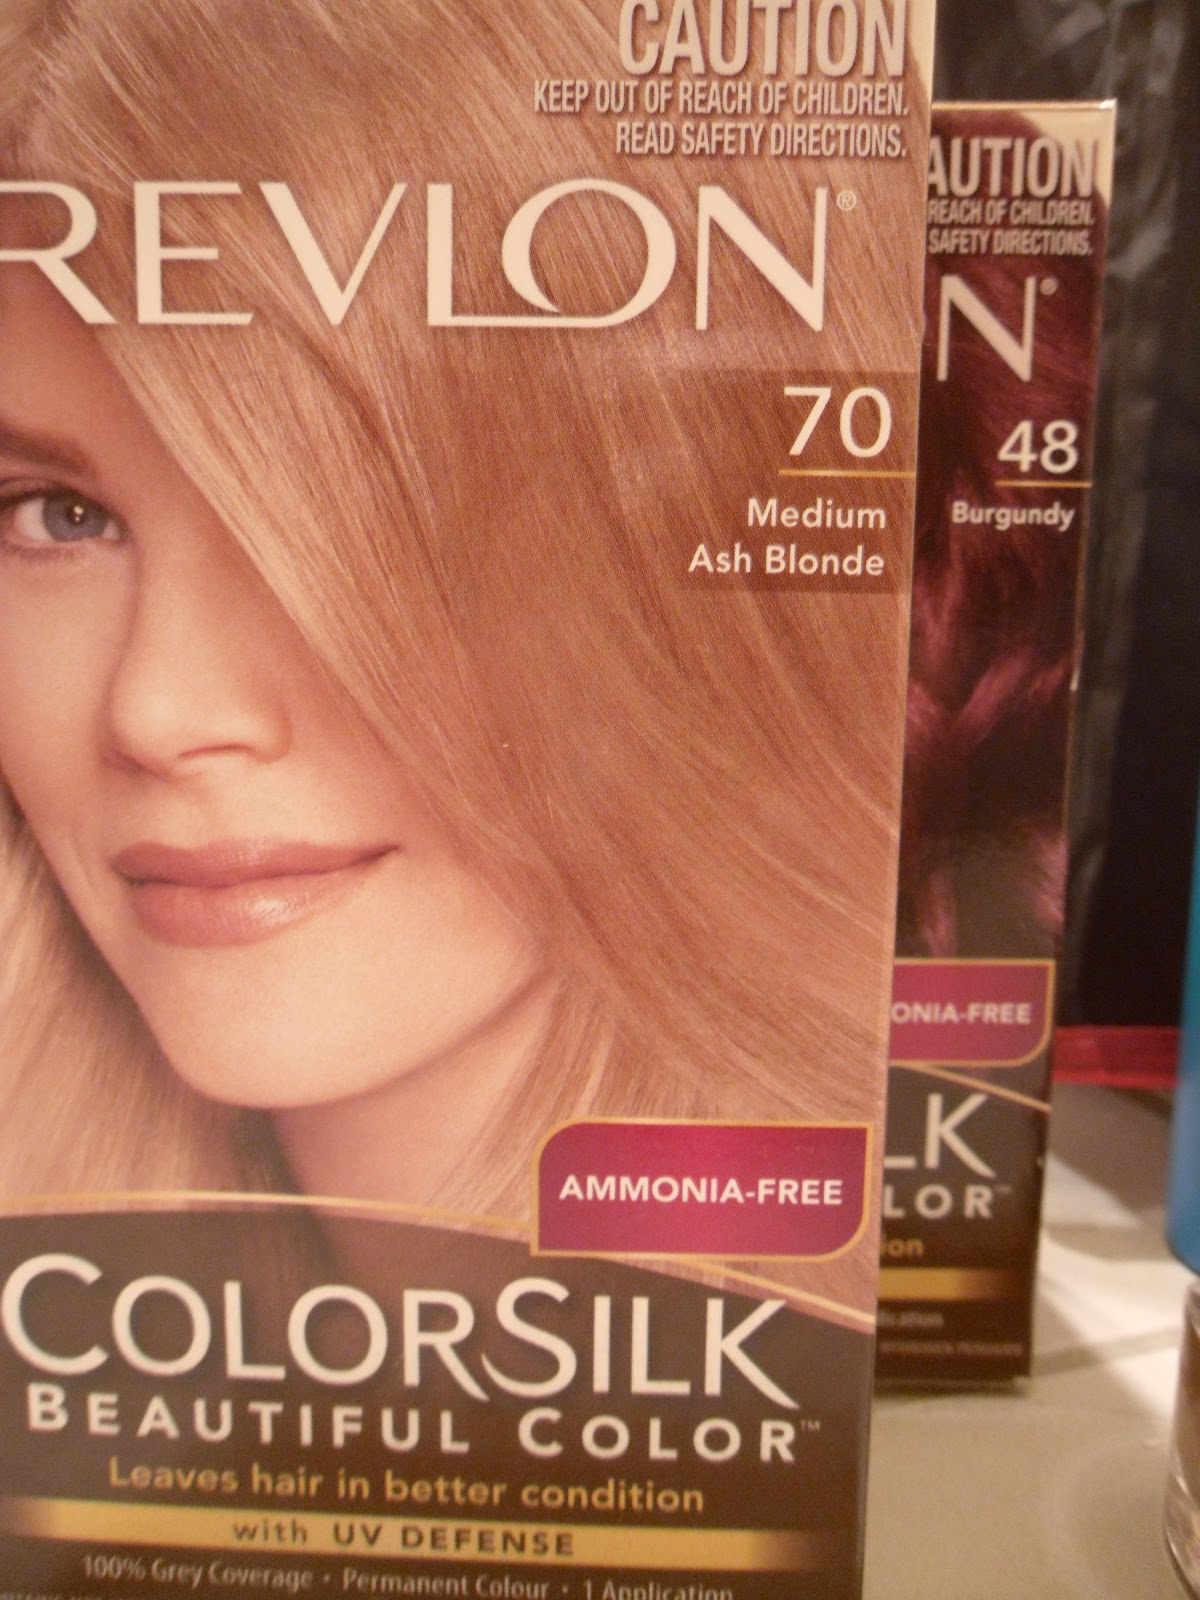 Revlon Colorsilk Honey Blonde Revlon colorsilk hair dye,